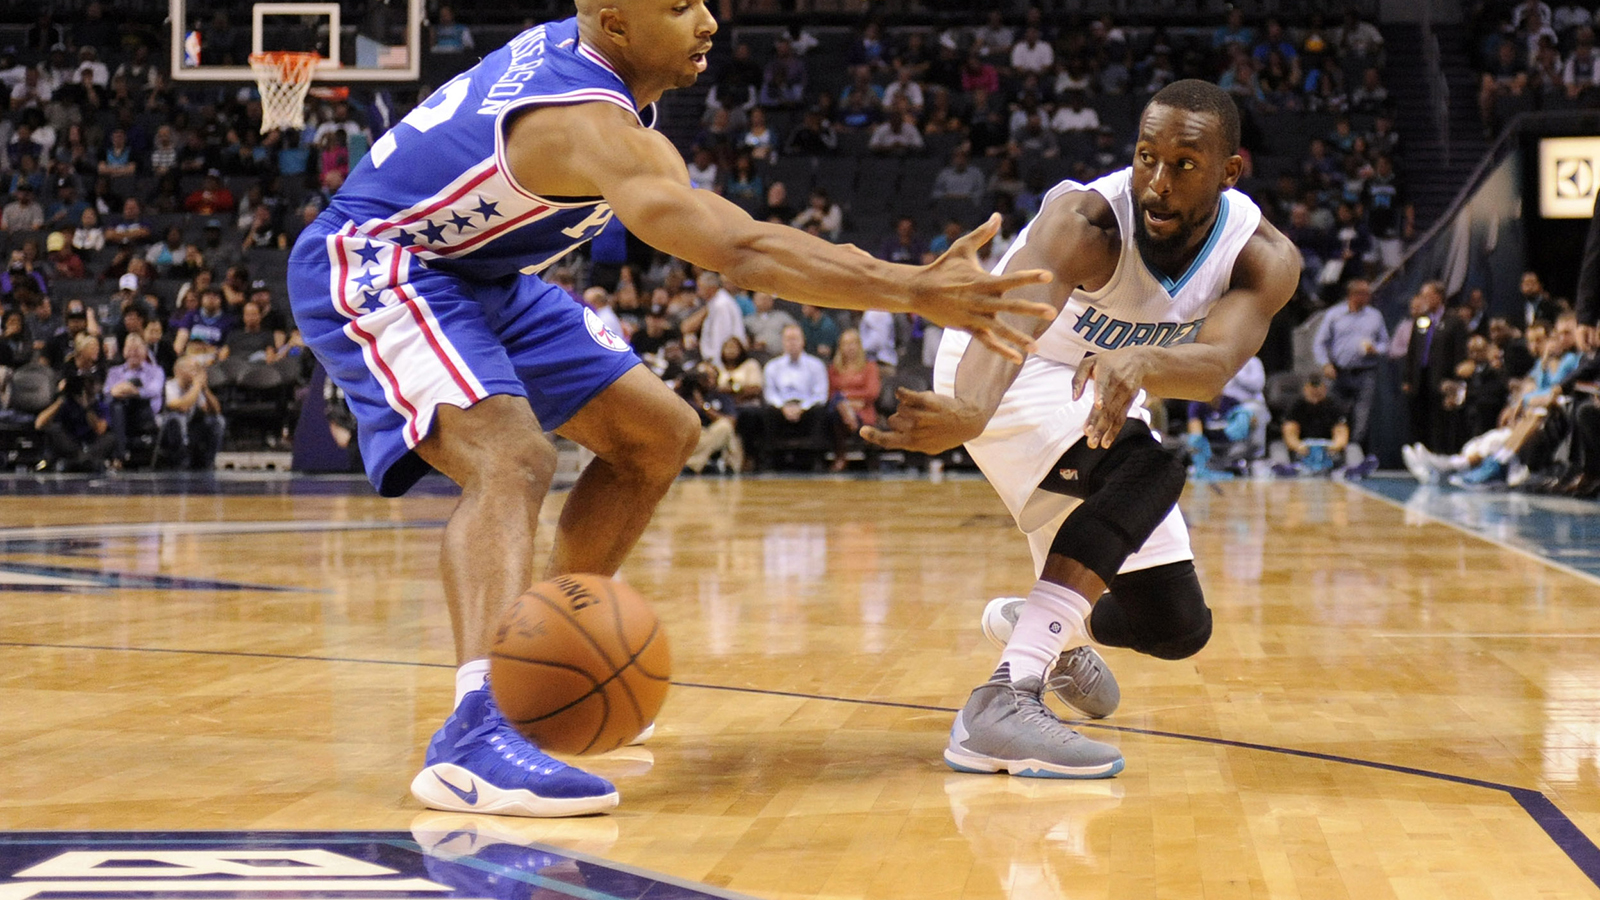 The Quarters: Kemba Walker's open-ended crescendo